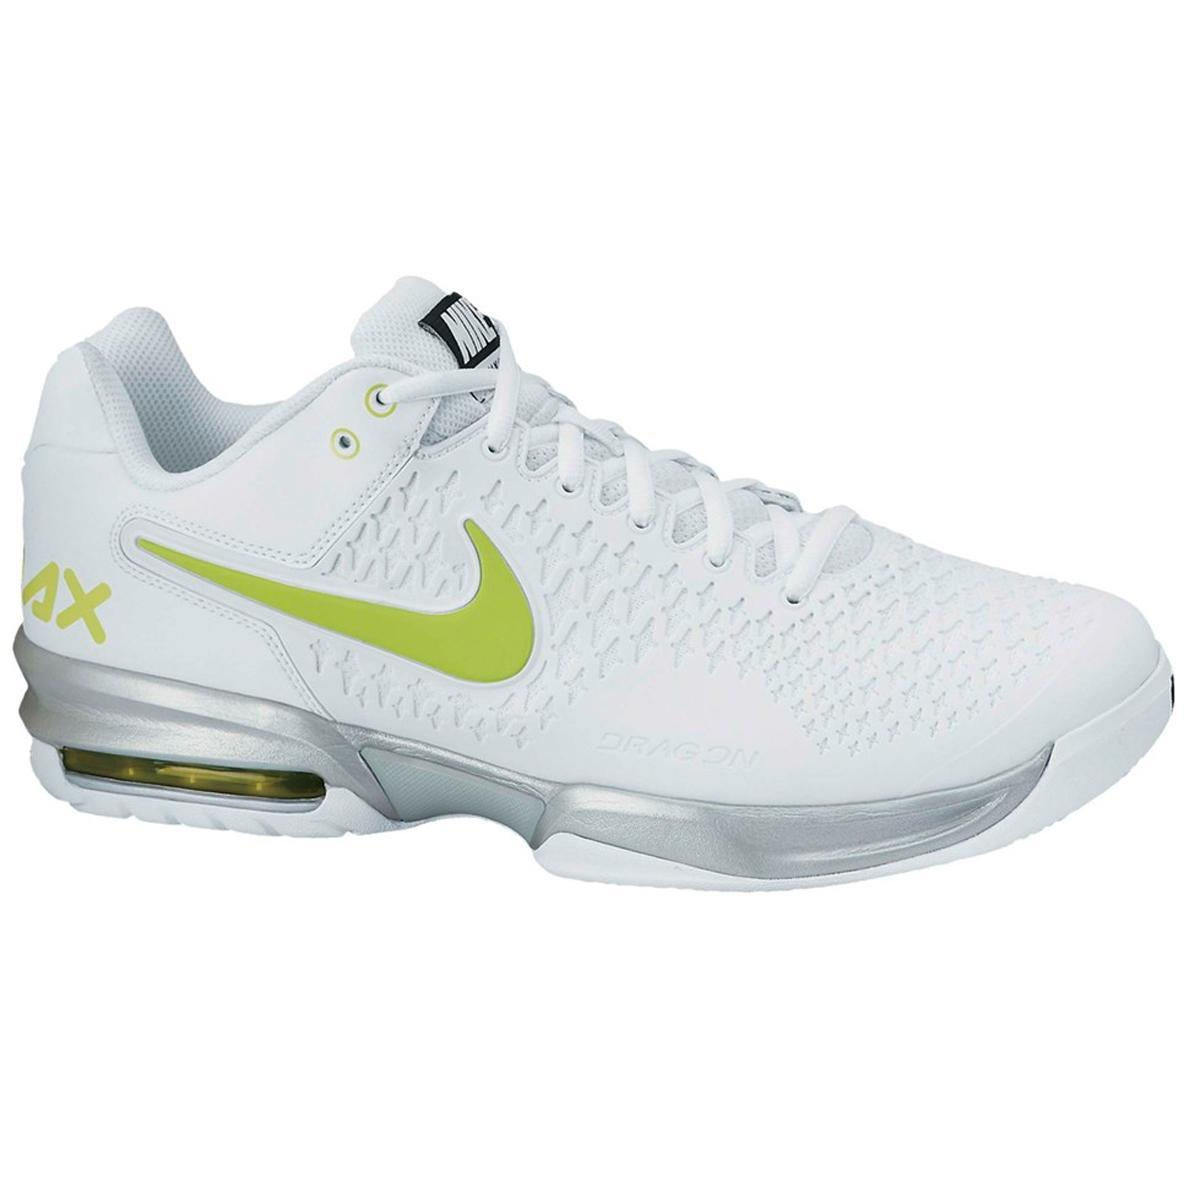 Nike Mens Air Max Cage Tennis Shoes WhiteGreen